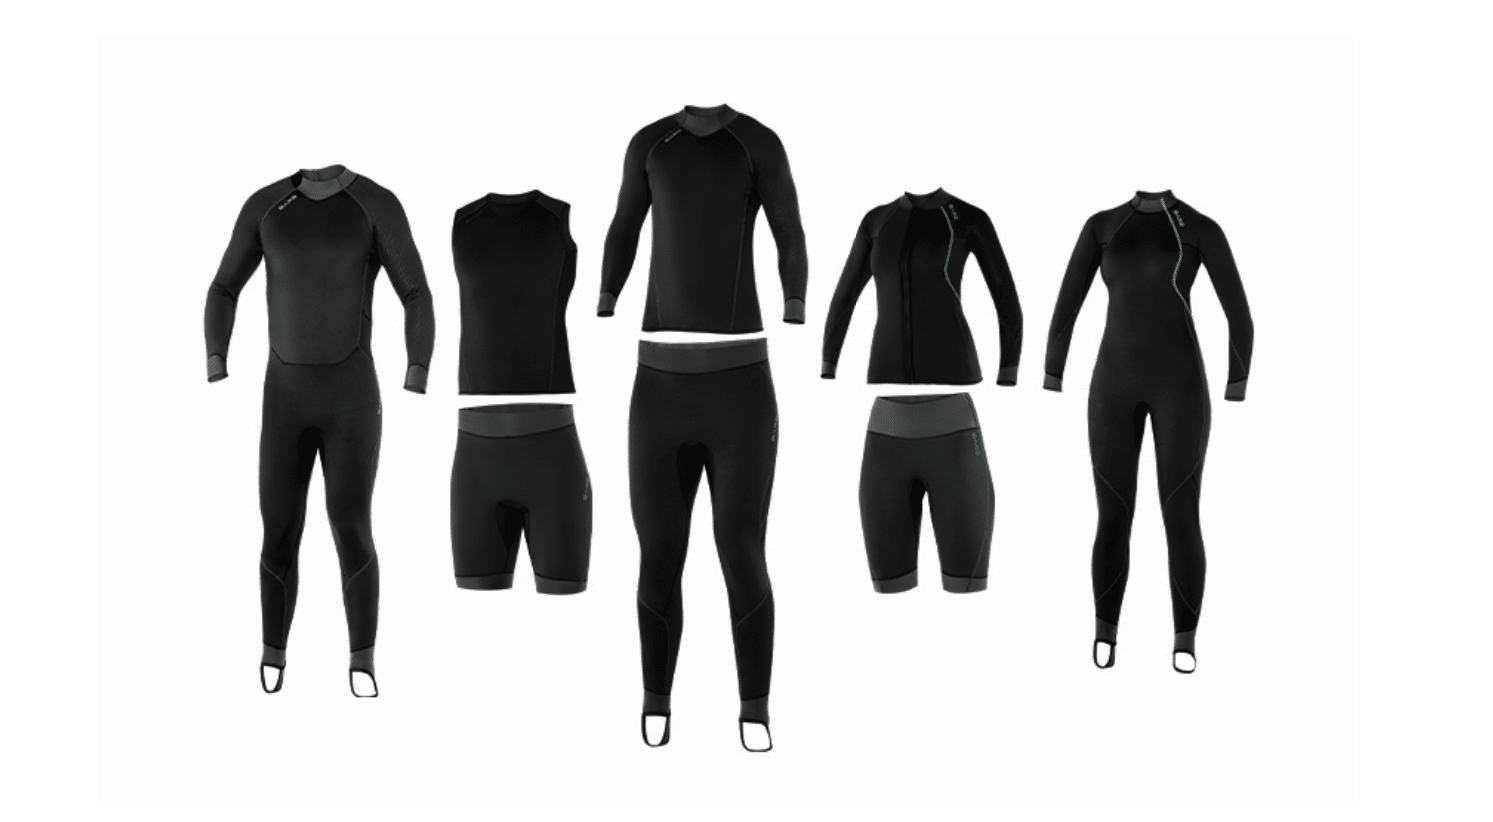 BARE Introduces New ExoWear Thermal Protection Clothing